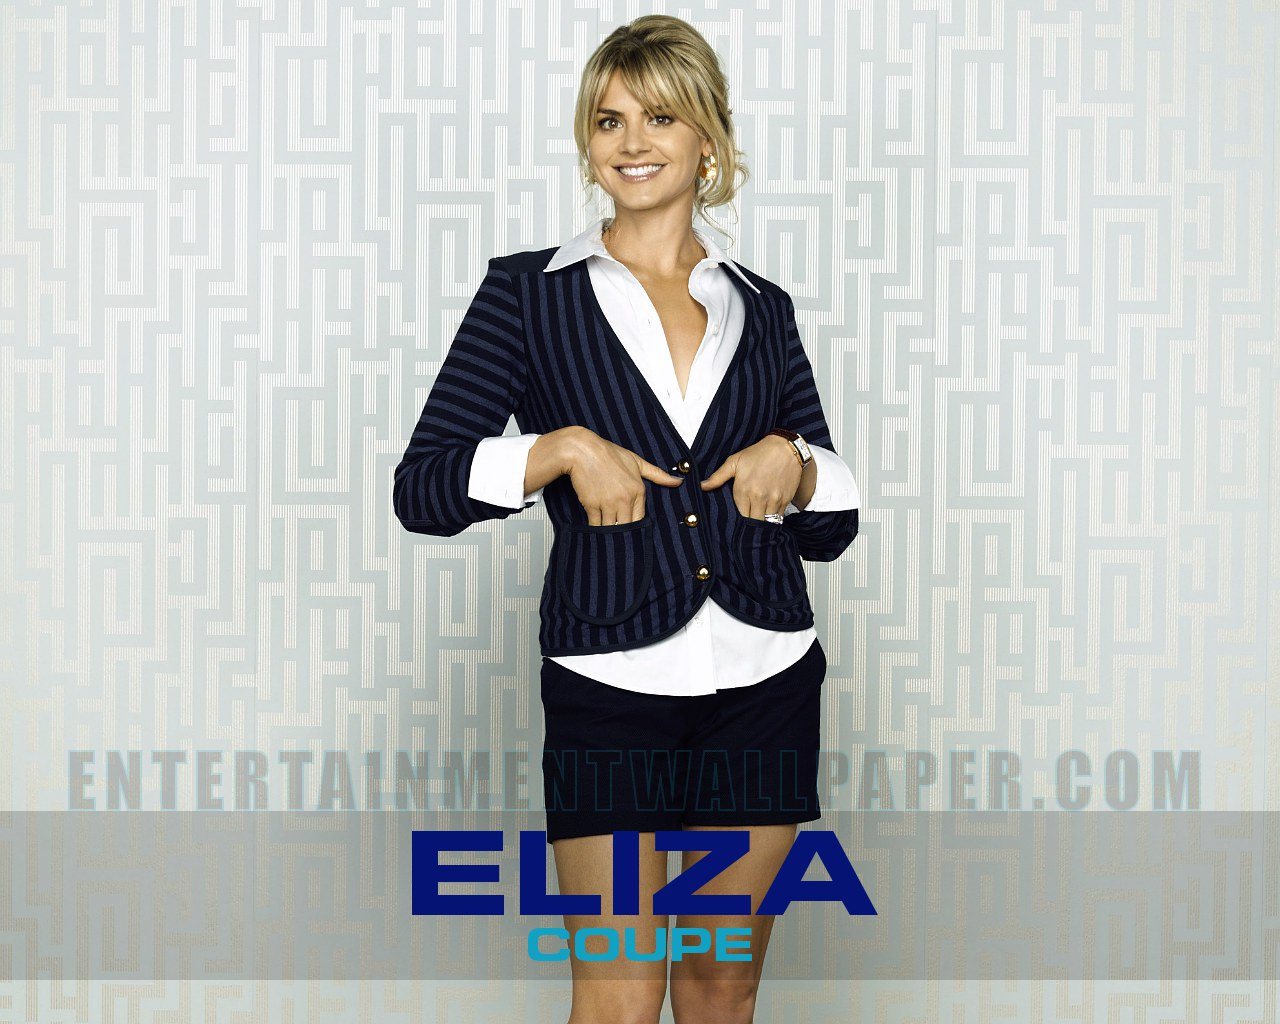 1280x1024 - Eliza Coupe Wallpapers 11